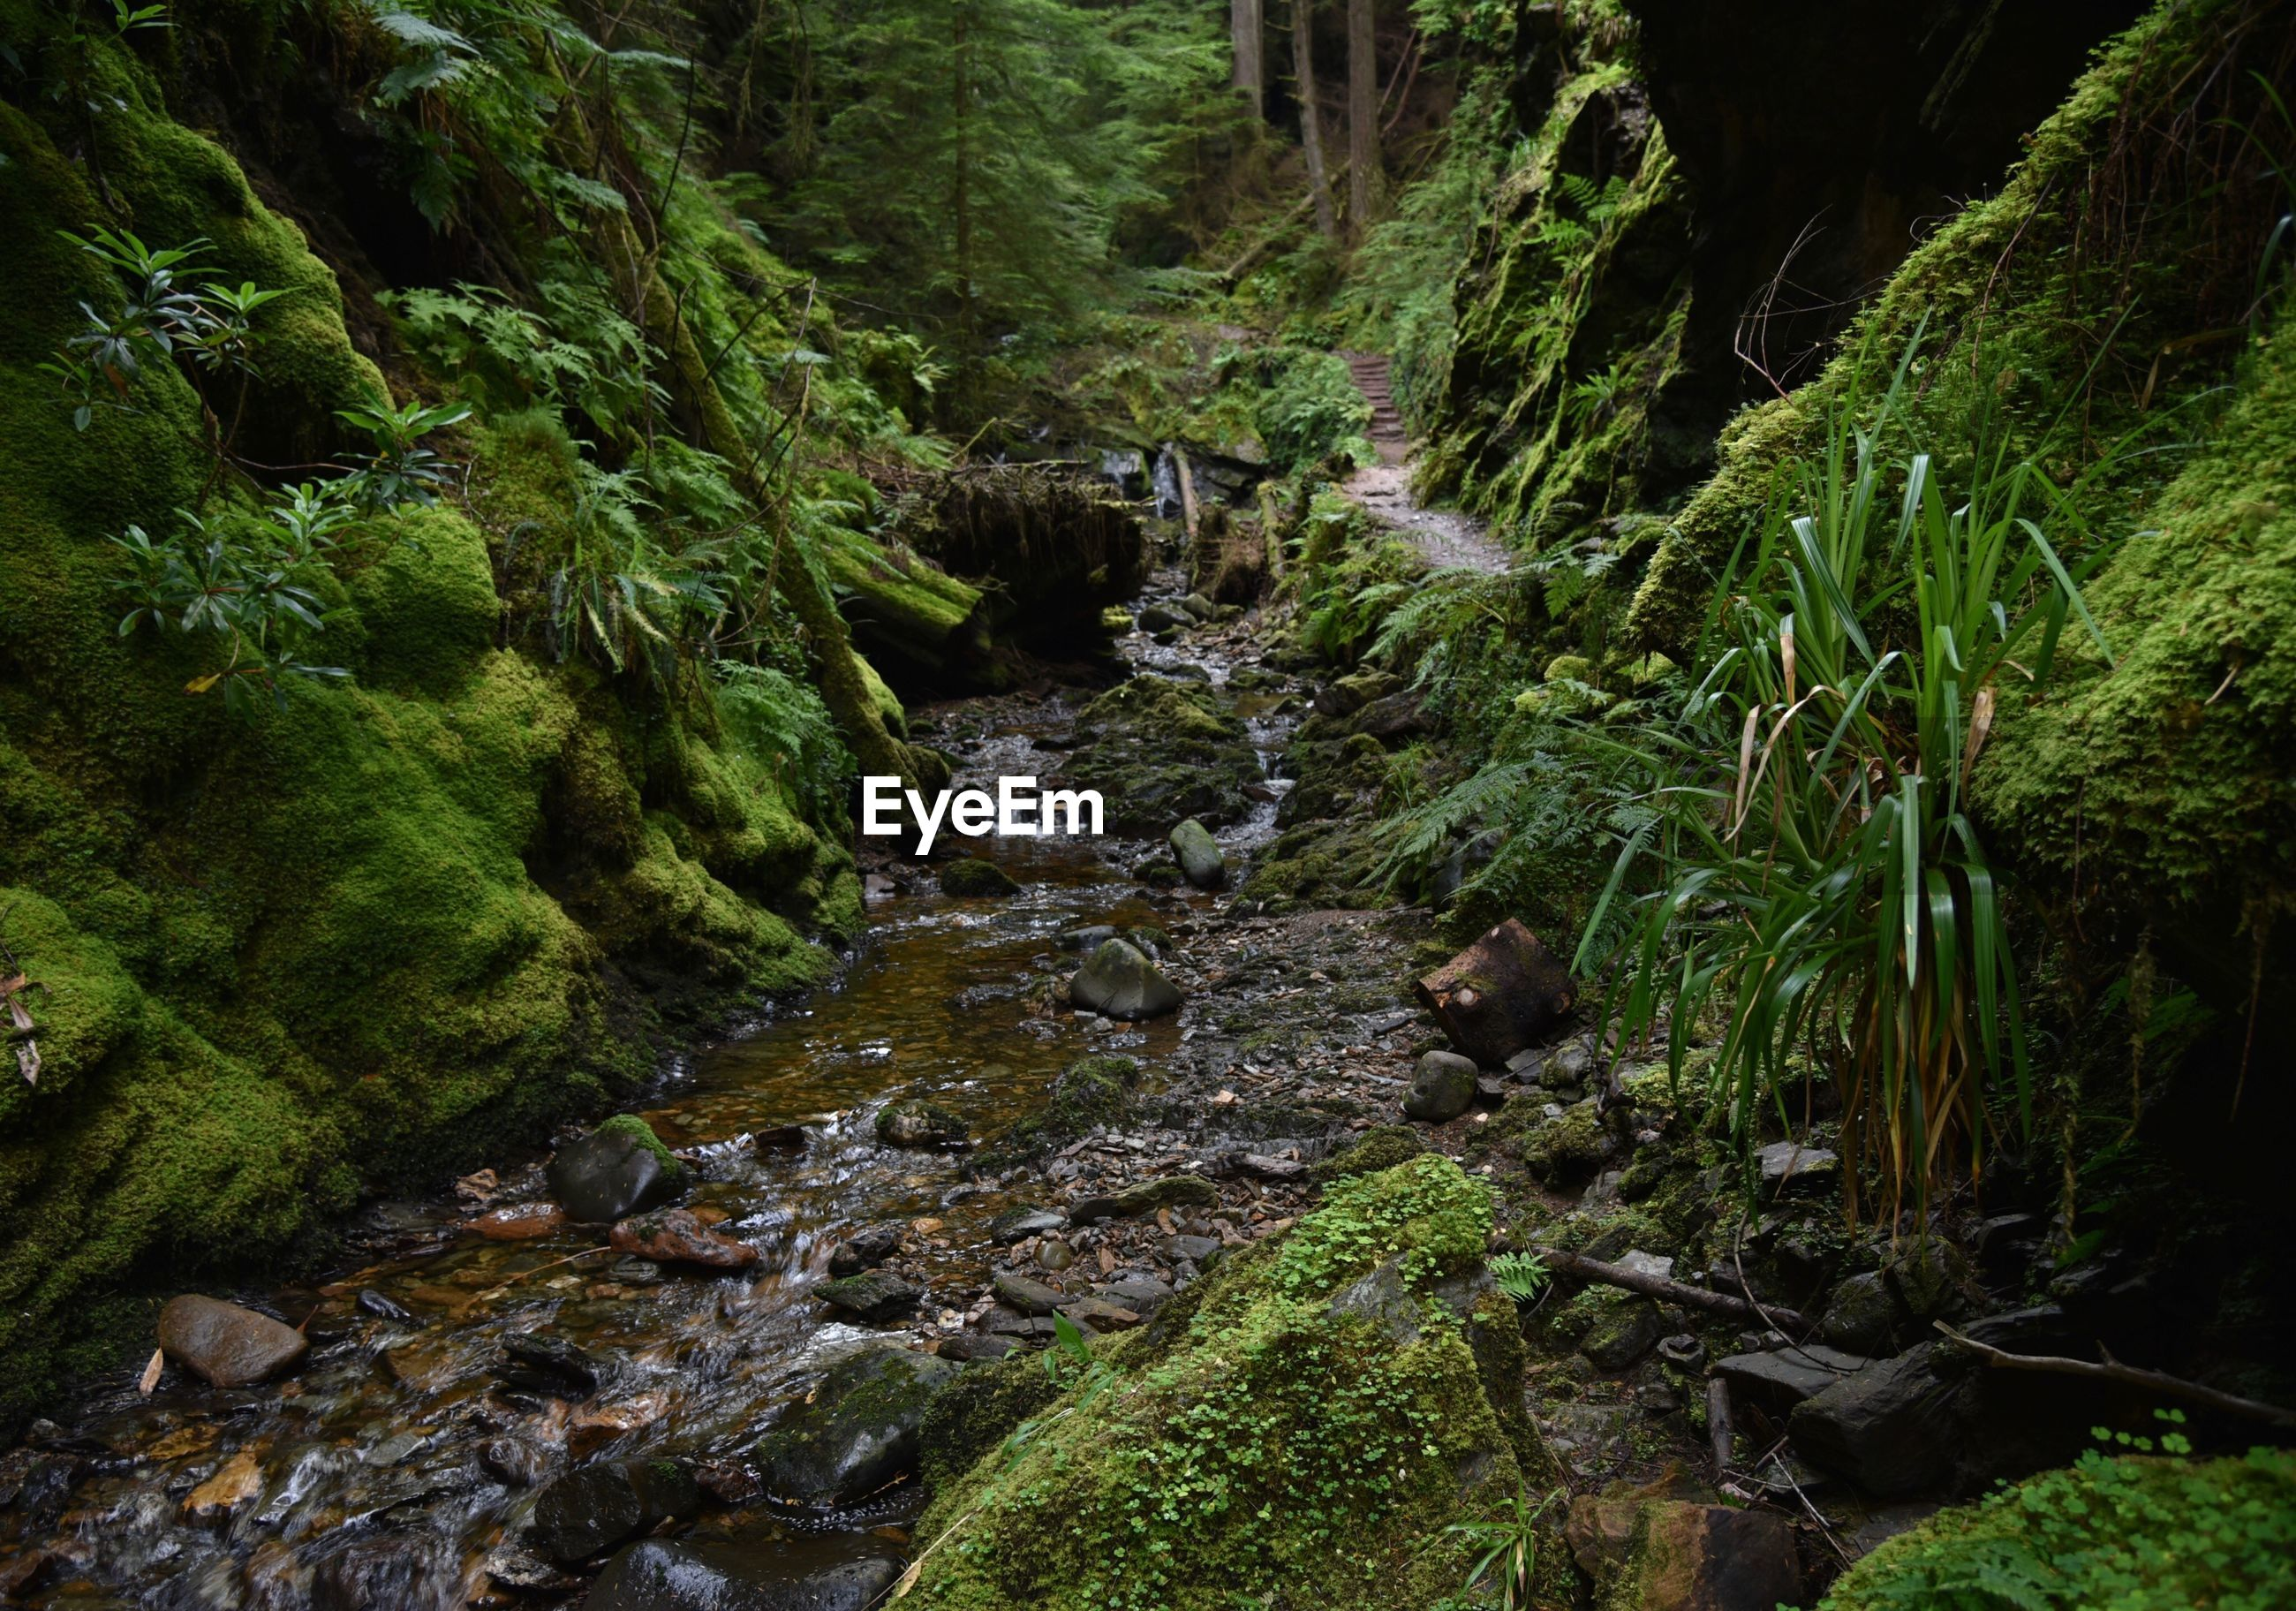 forest, tree, tranquility, stream, tranquil scene, non-urban scene, scenics, water, woodland, narrow, tree trunk, nature, flowing, moss, beauty in nature, footpath, travel destinations, river, green color, plant, growth, the way forward, stone, canal, long, outdoors, messy, ethereal, tourism, lush foliage, solitude